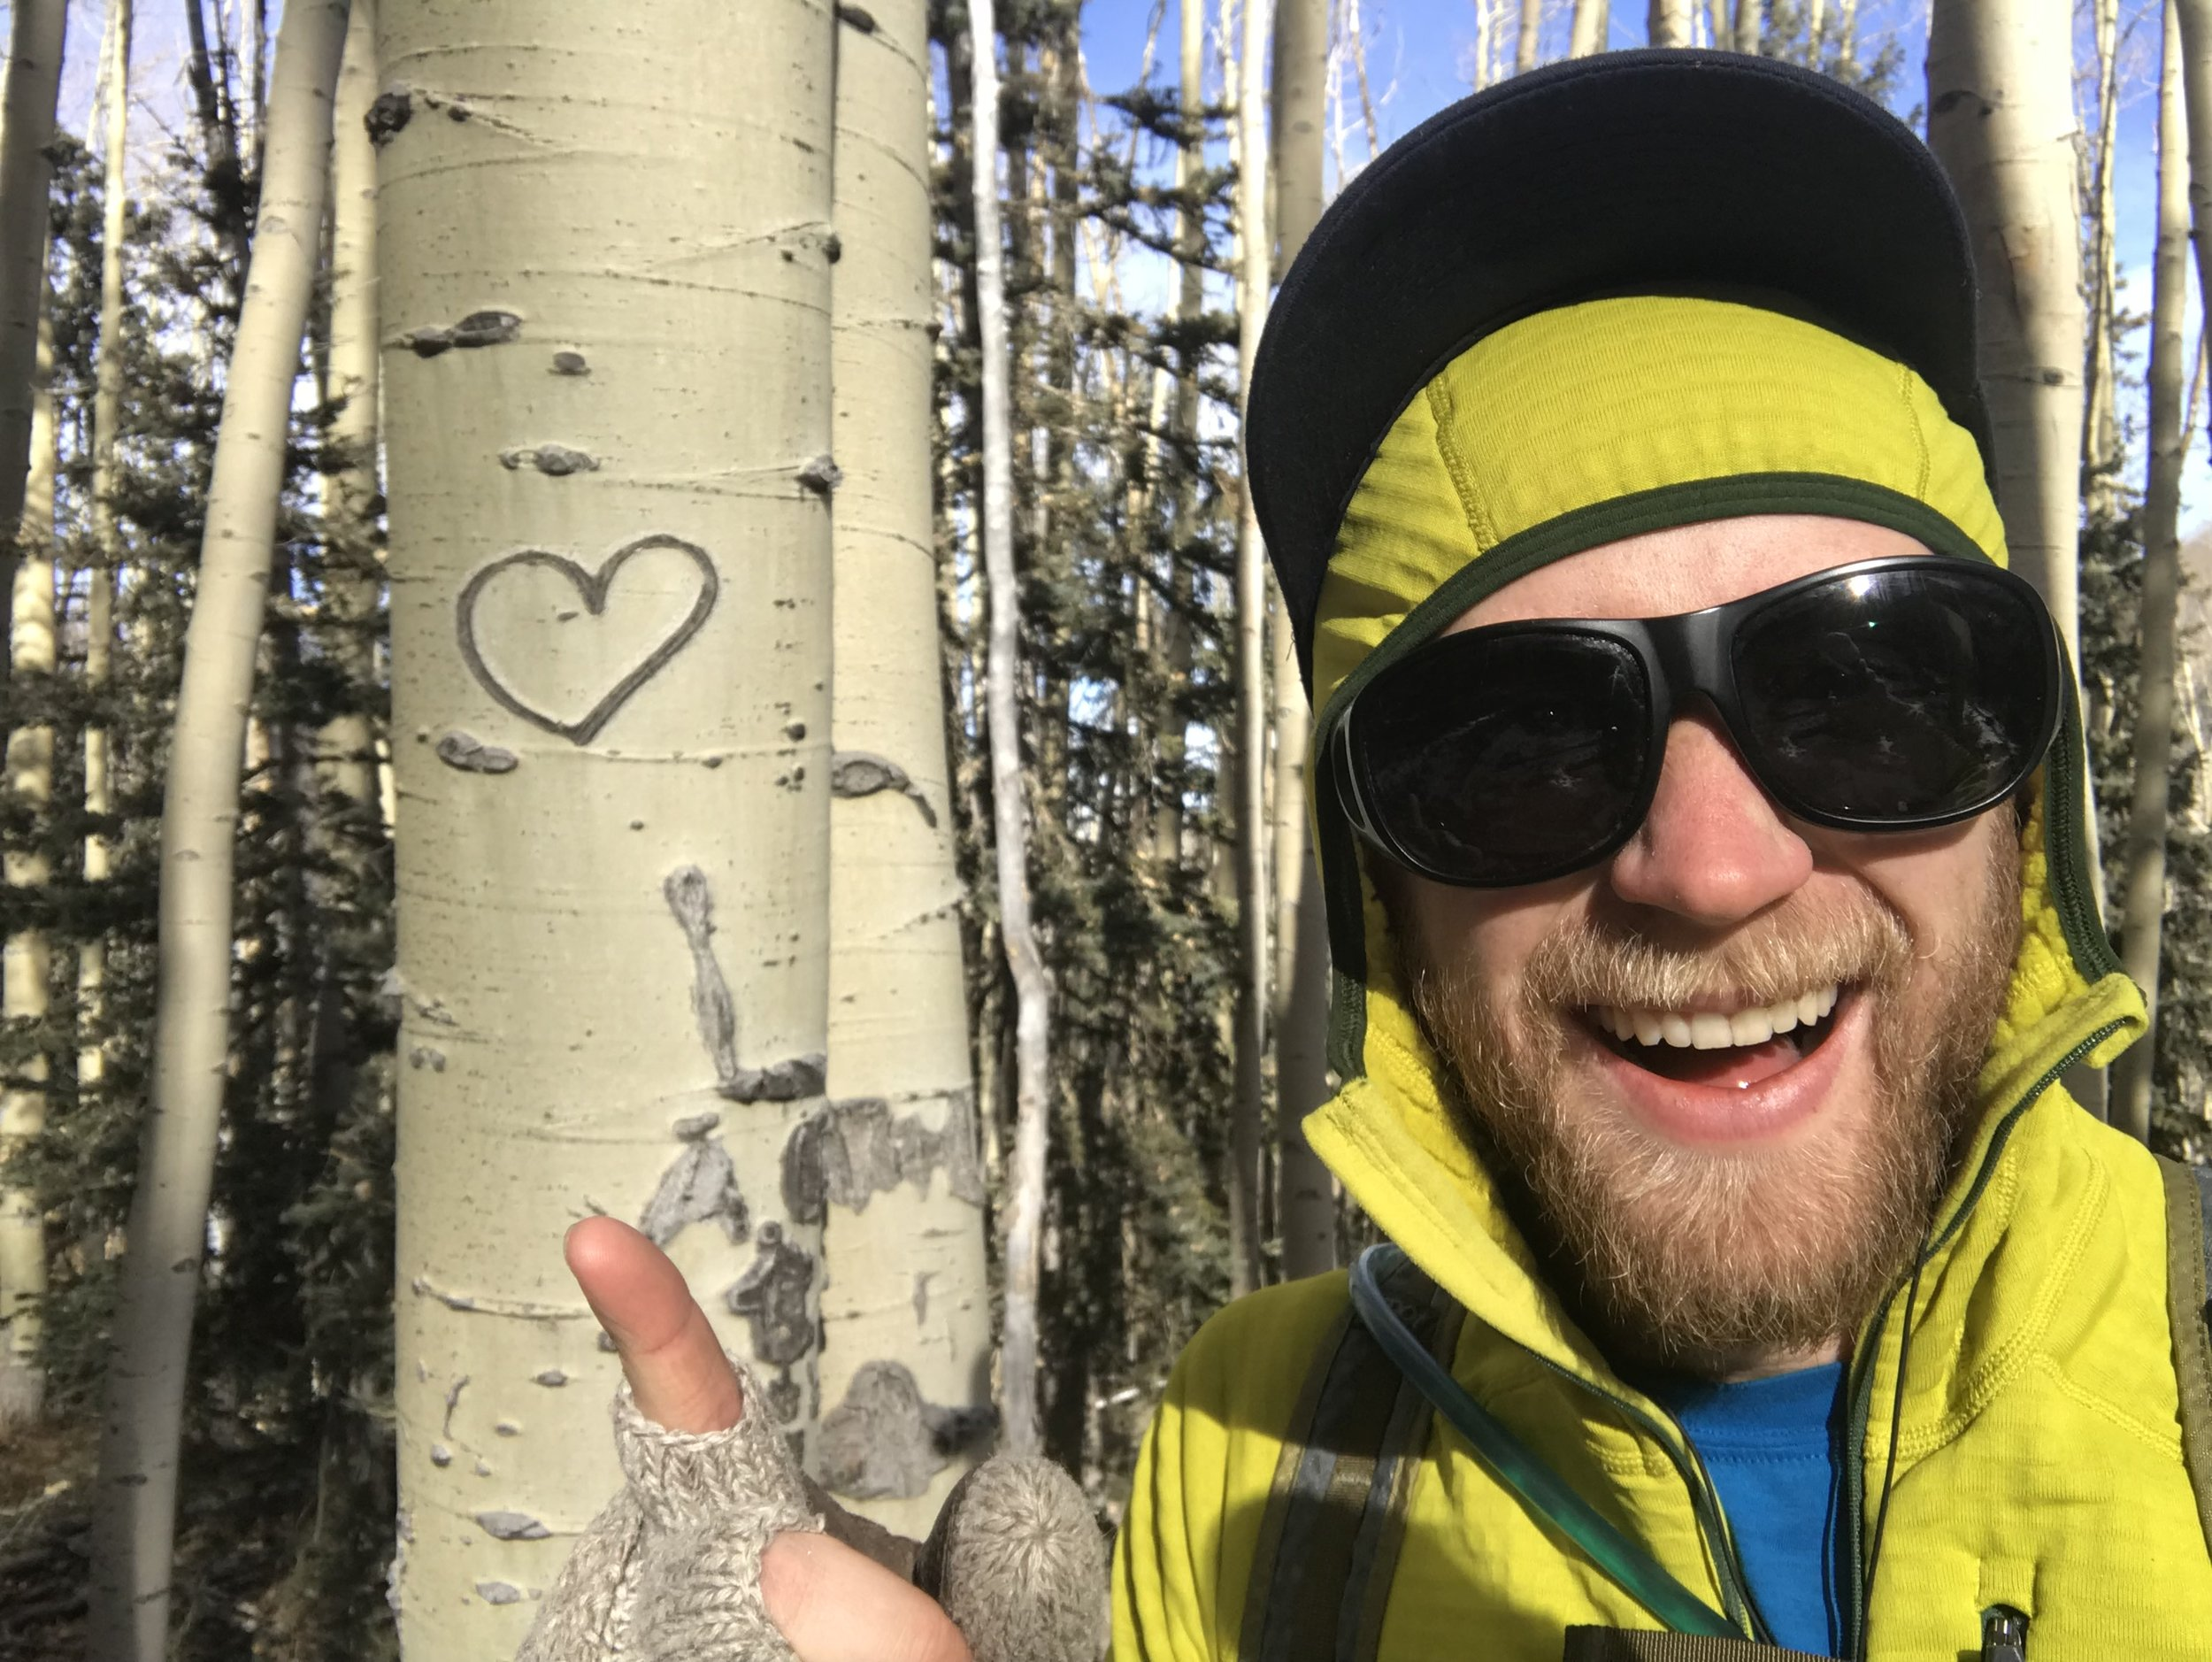 You can tell its an aspen because of the way it is! Neat!